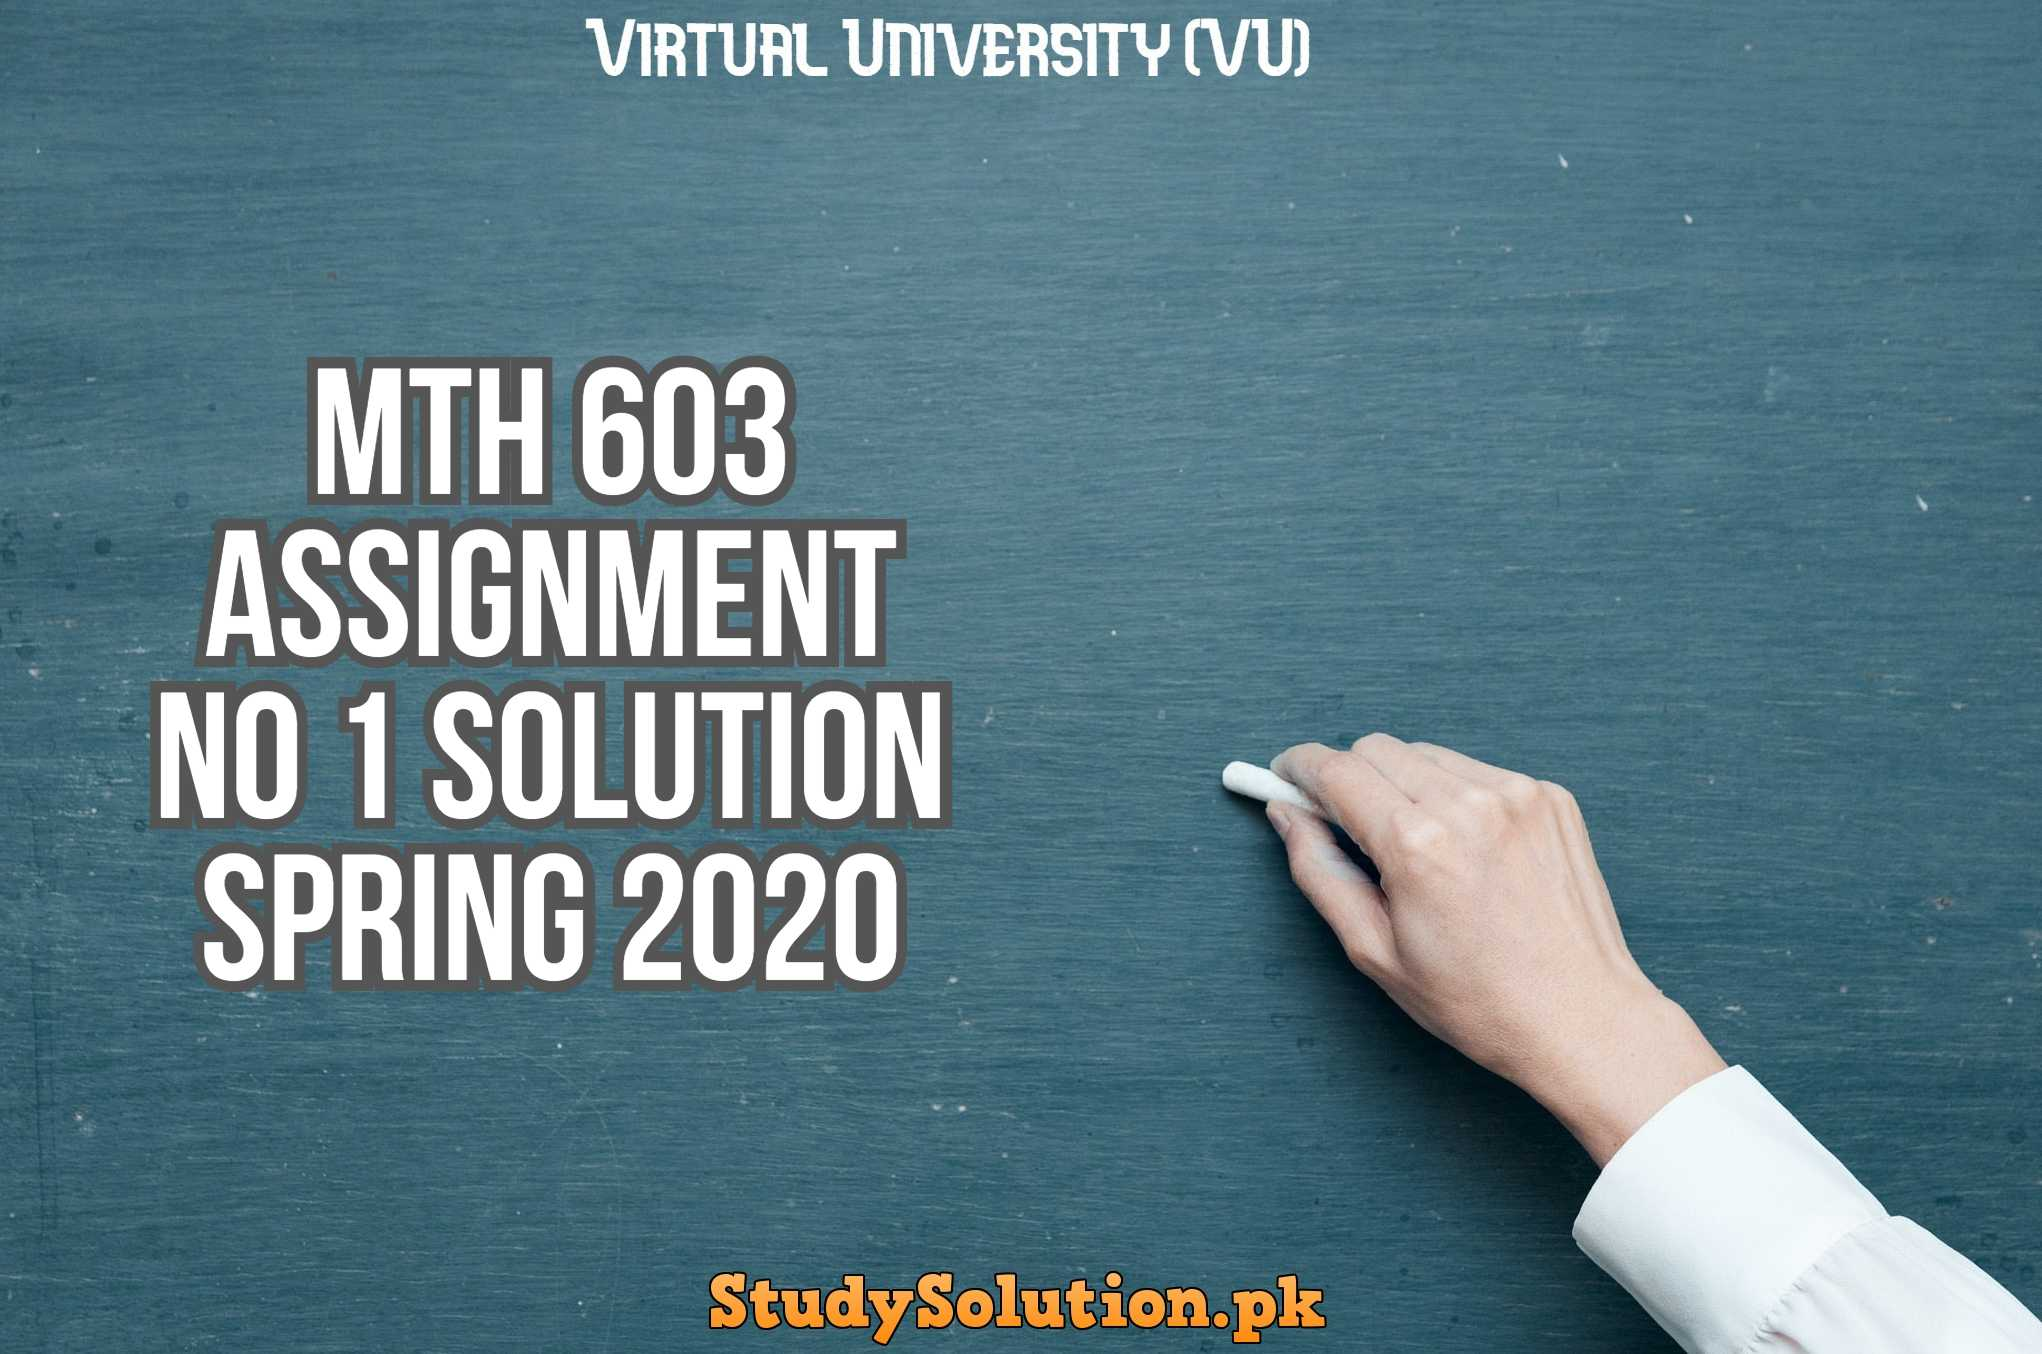 MTH 603 Assignment No 1 Solution Spring 2020